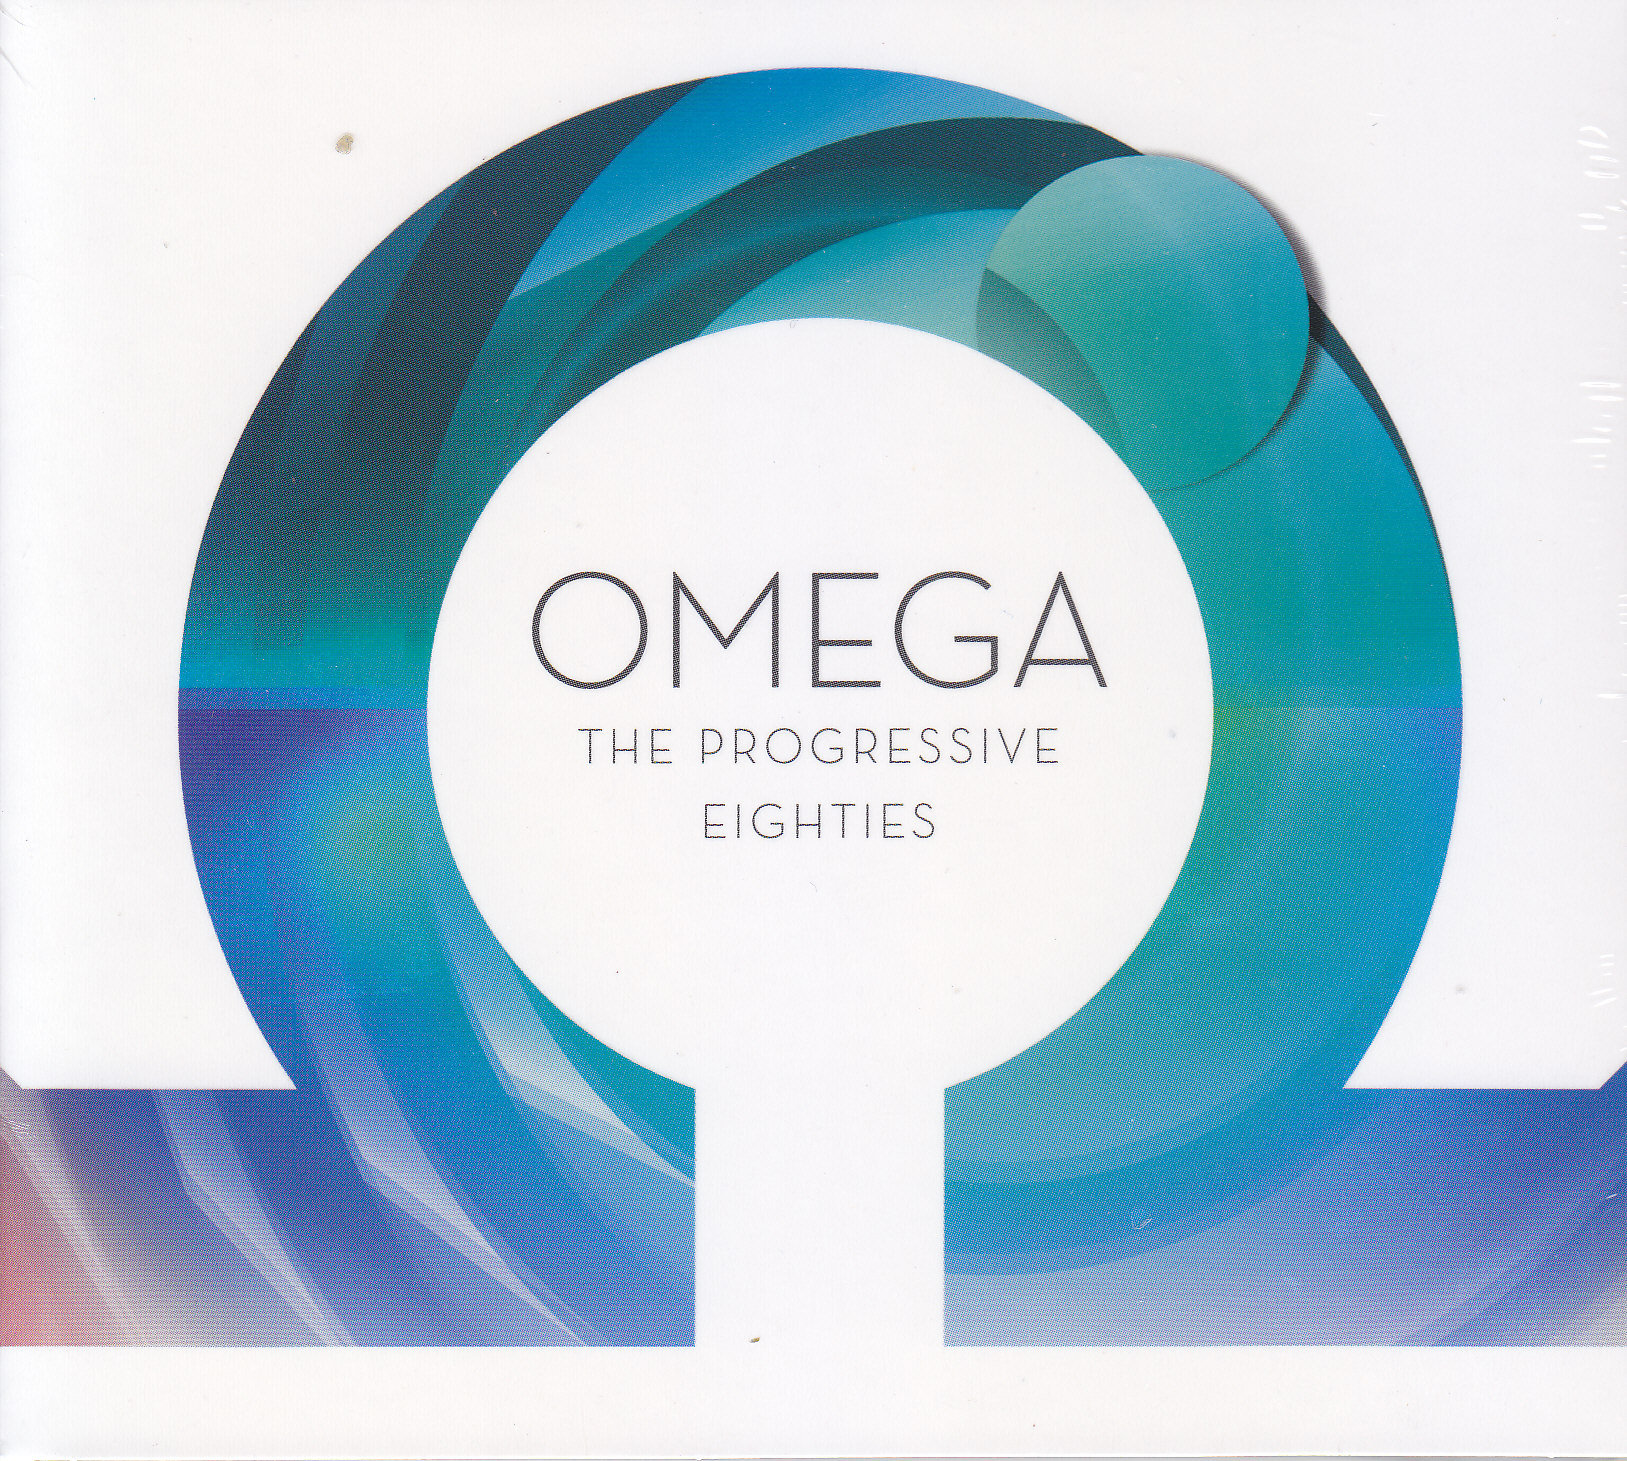 Omega - The Progressive Eighties